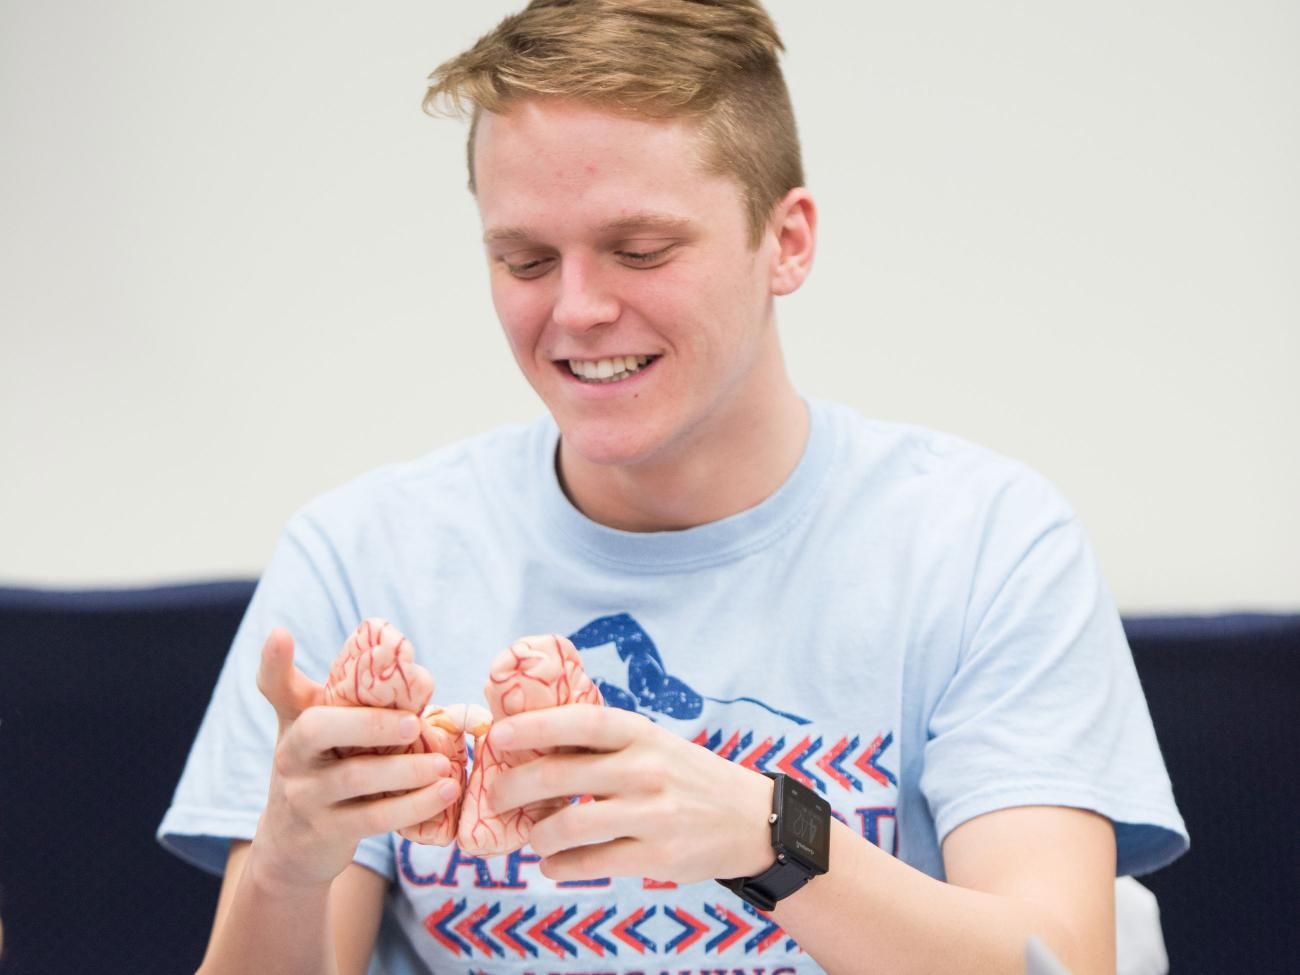 A student looks at a brain prop during a class meeting.